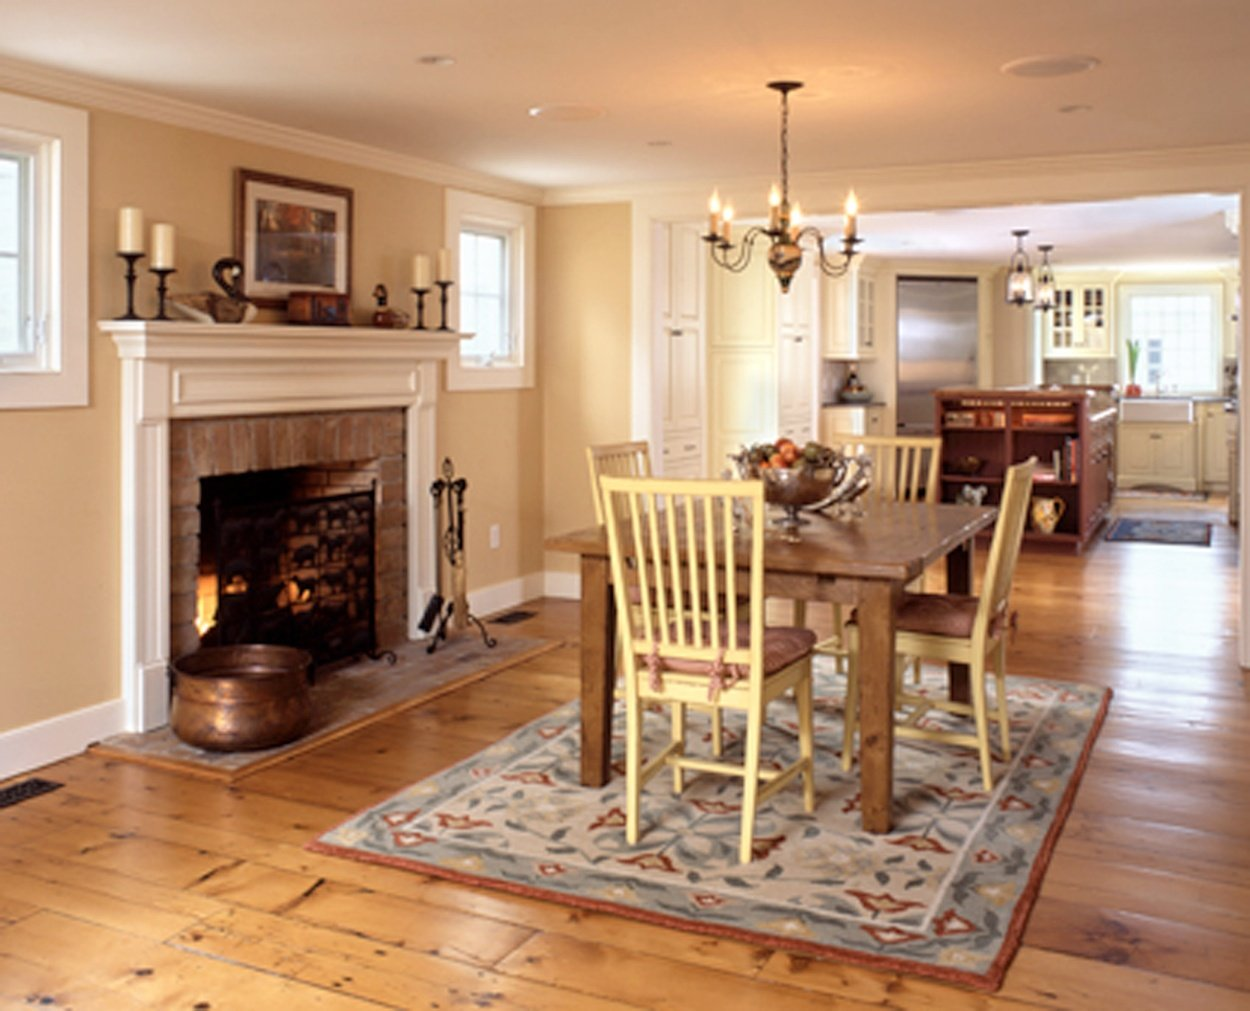 Dining table to the right of the fireplace in this traditional colonial home.